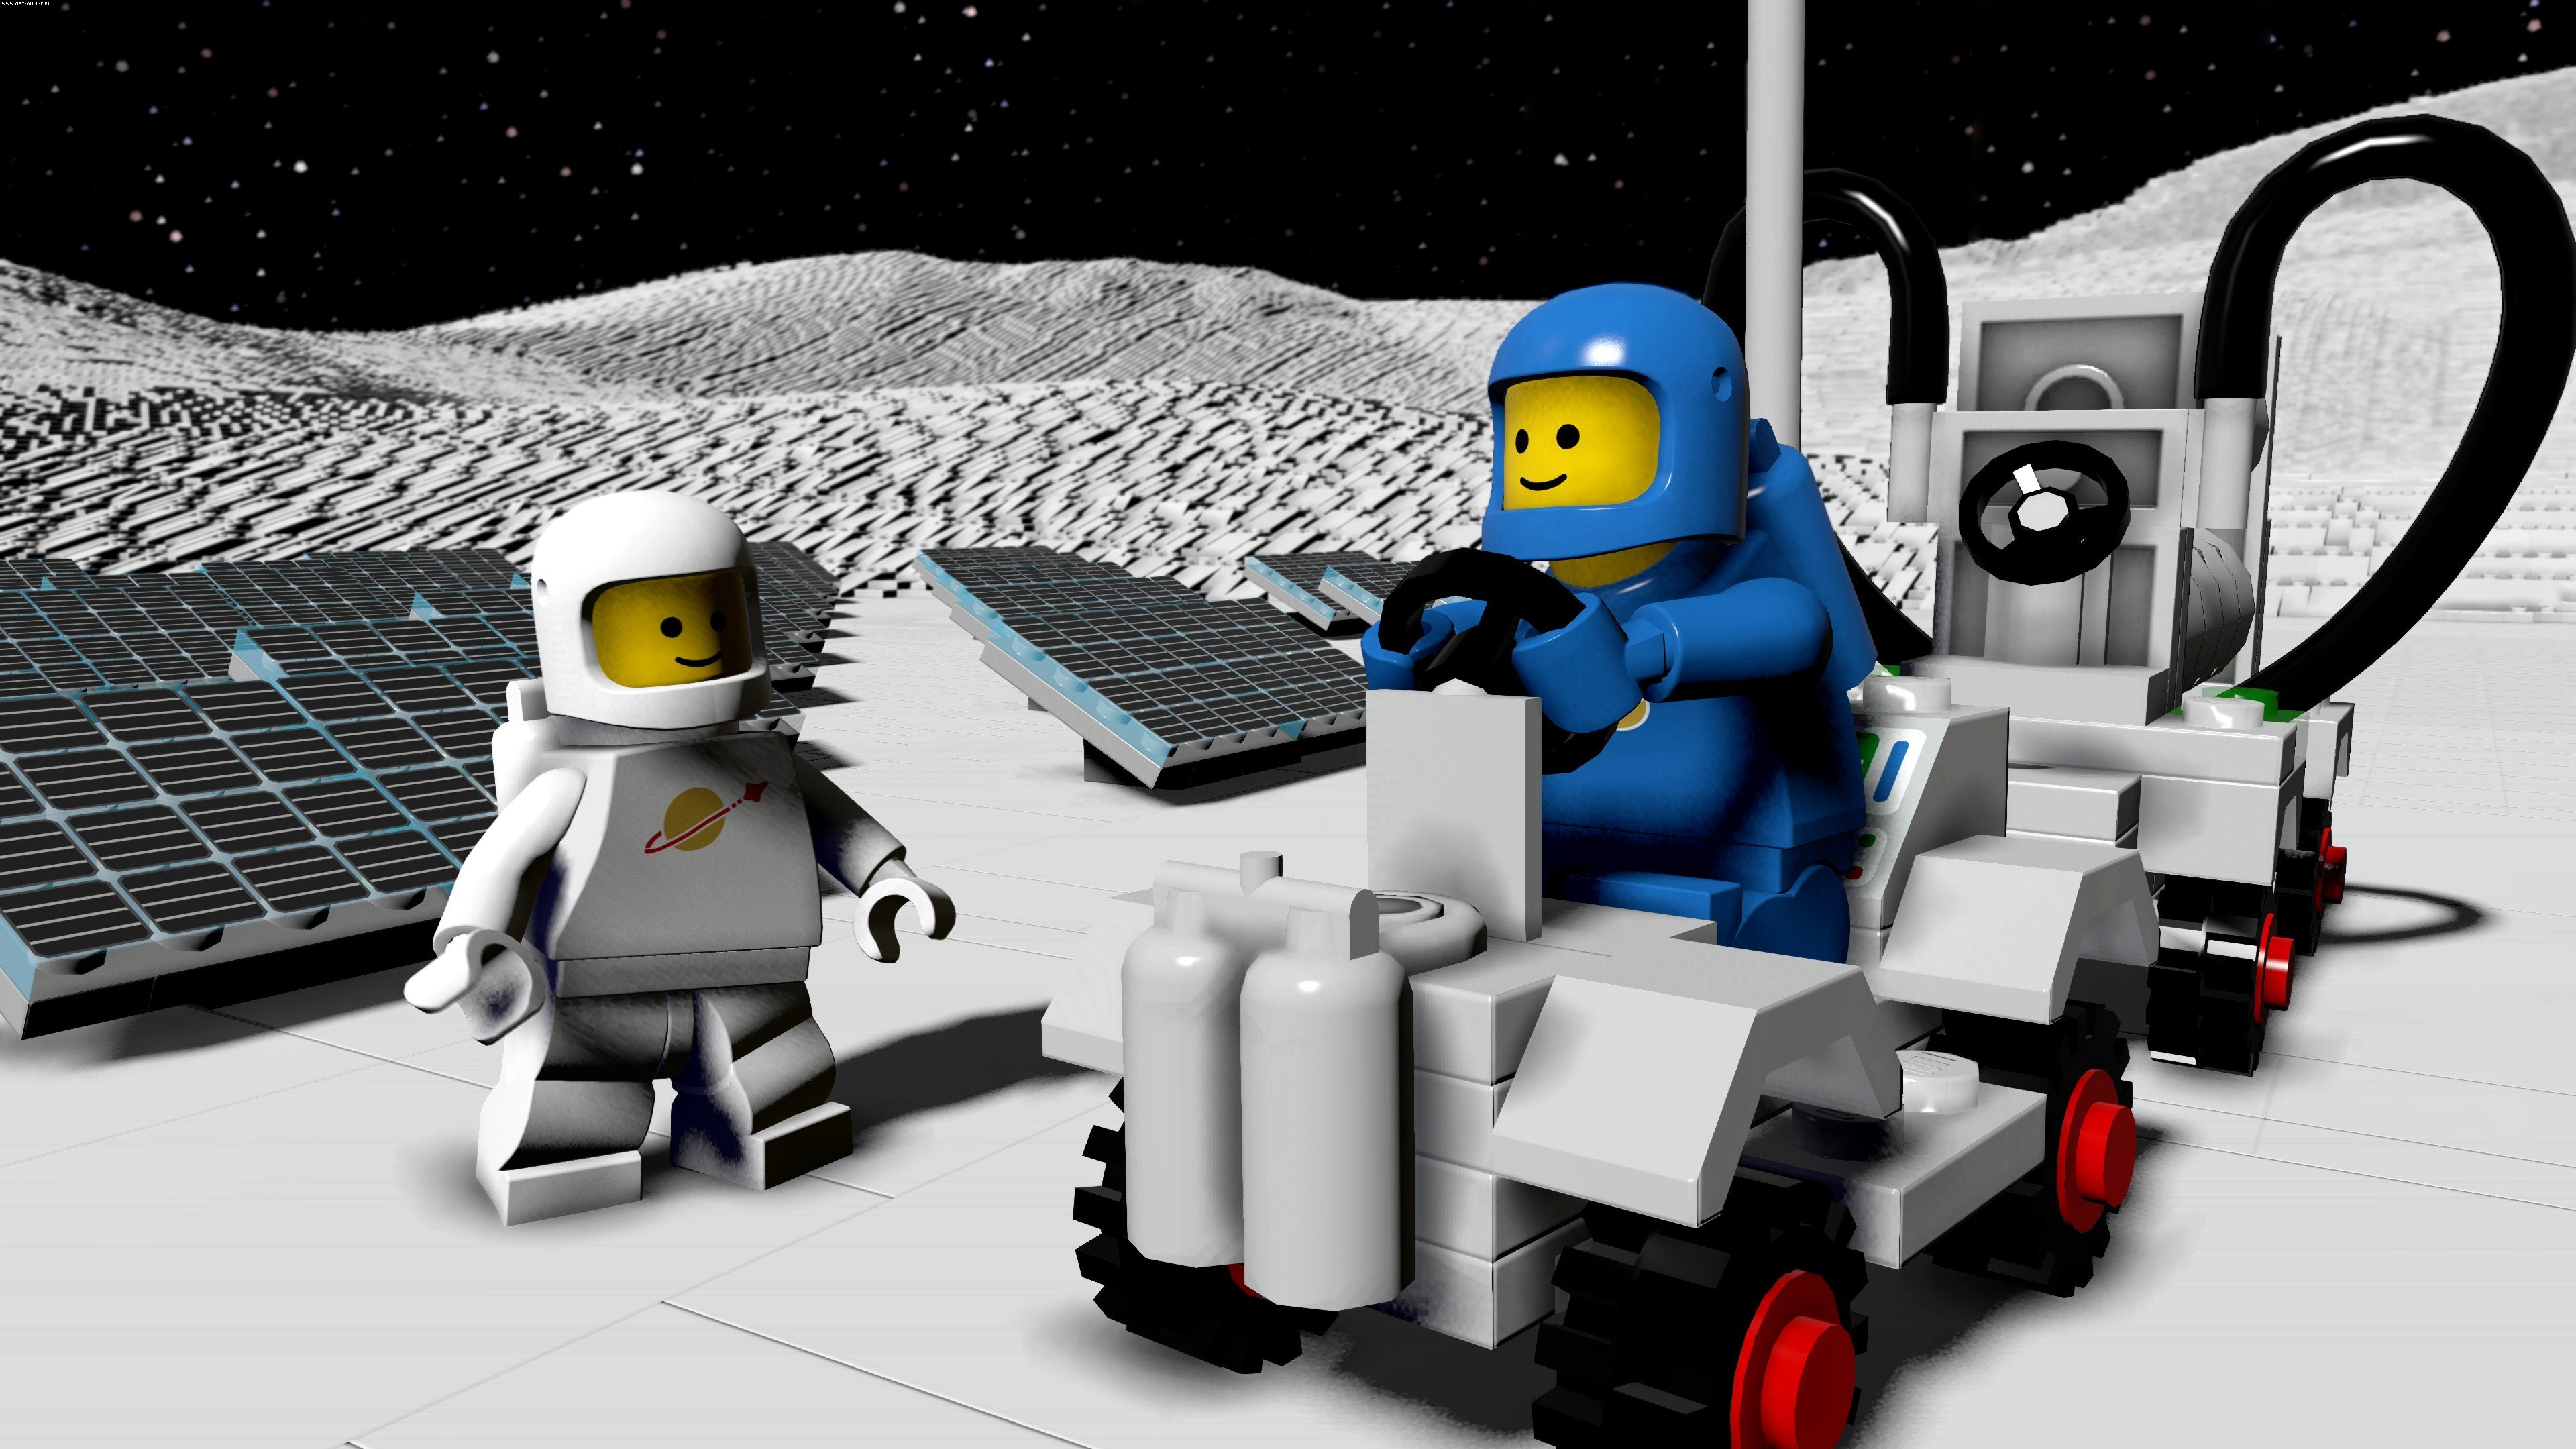 LEGO Worlds PC, PS4, XONE, Switch Gry Screen 2/26, Traveller's Tales, Warner Bros. Interactive Entertainment